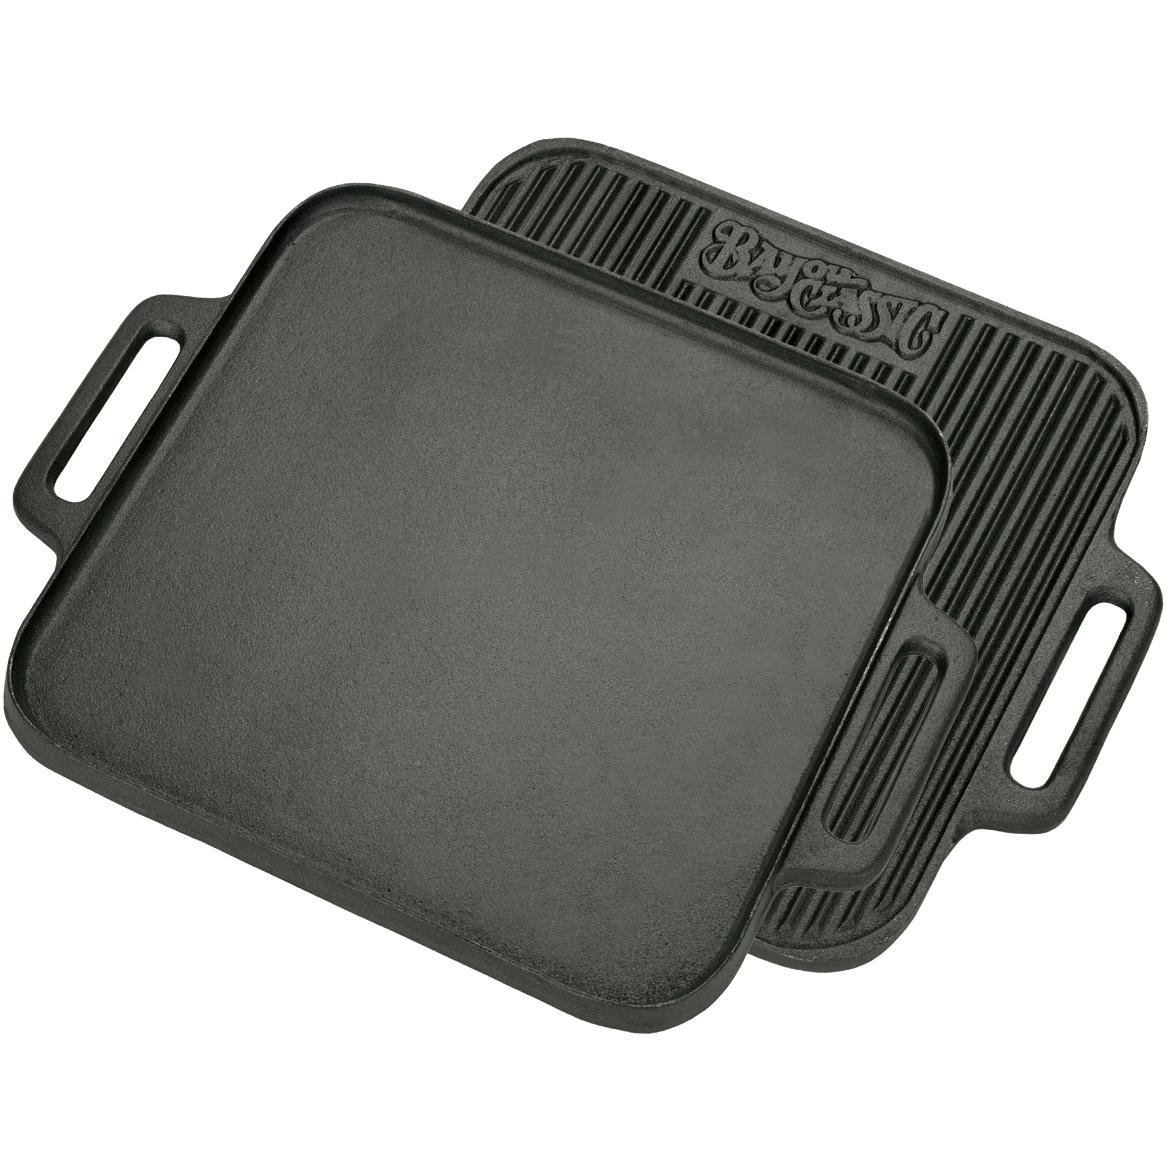 Bayou Classic Griddles Reversible 14 Inch Square Cast Iron Griddle